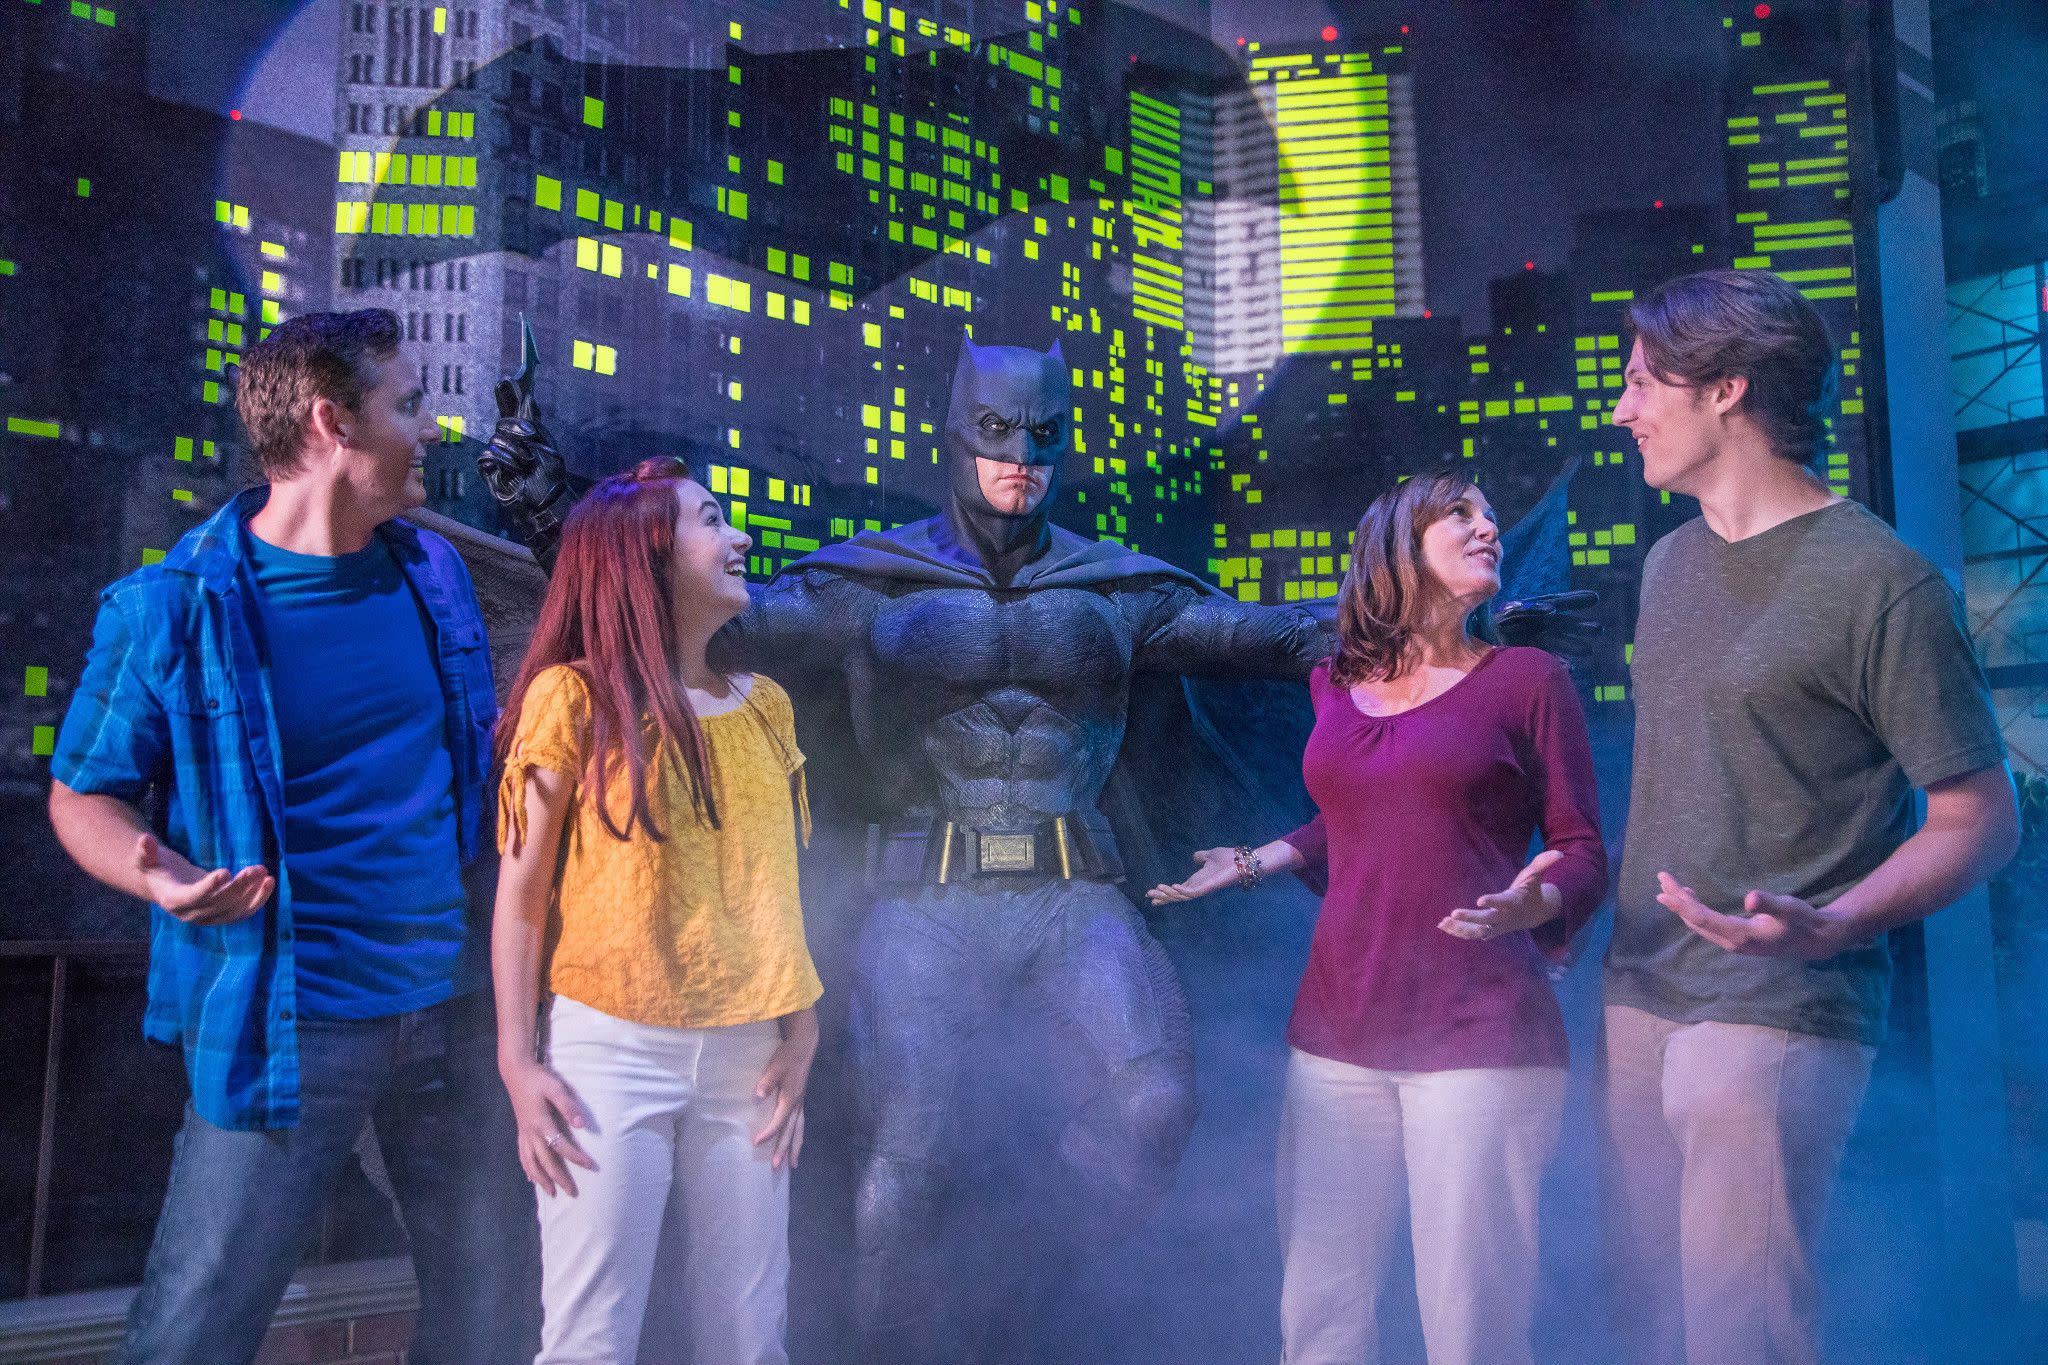 Ben Affleck as Batman at Madame Tussauds Orlando